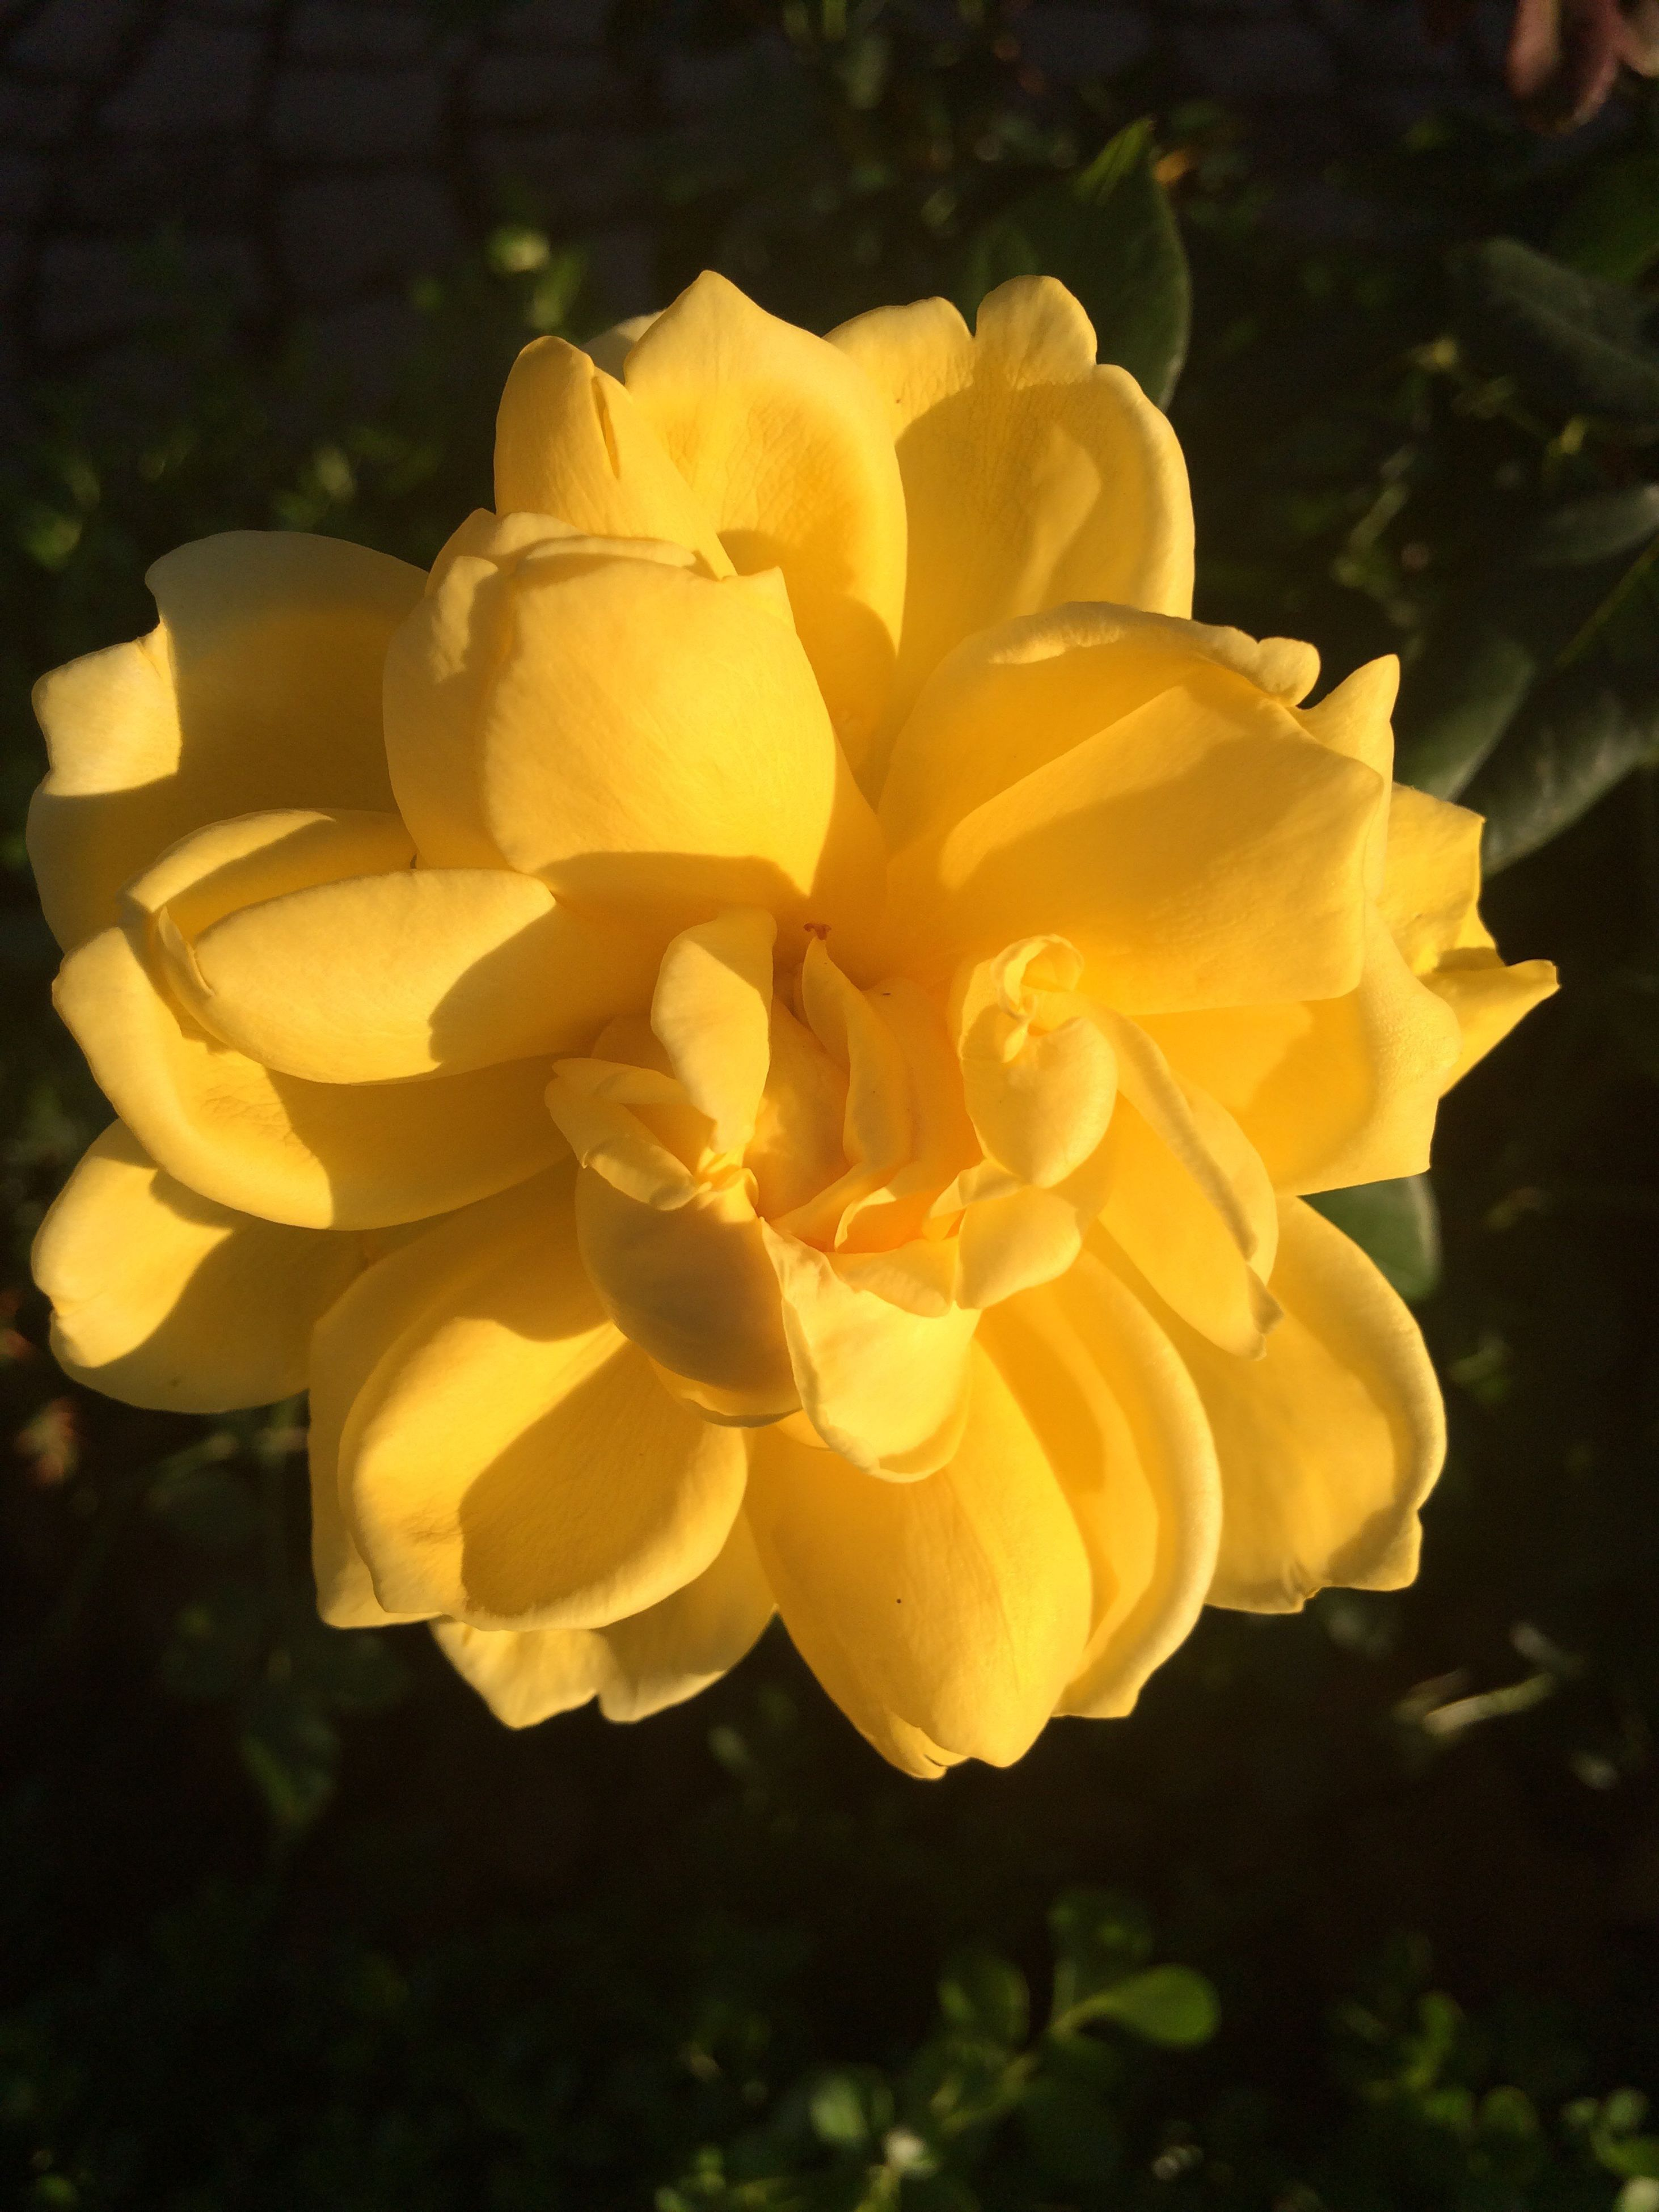 flower, petal, freshness, fragility, flower head, close-up, yellow, beauty in nature, growth, nature, springtime, plant, rose - flower, single flower, blooming, in bloom, softness, blossom, day, vibrant color, focus on foreground, no people, botany, growing